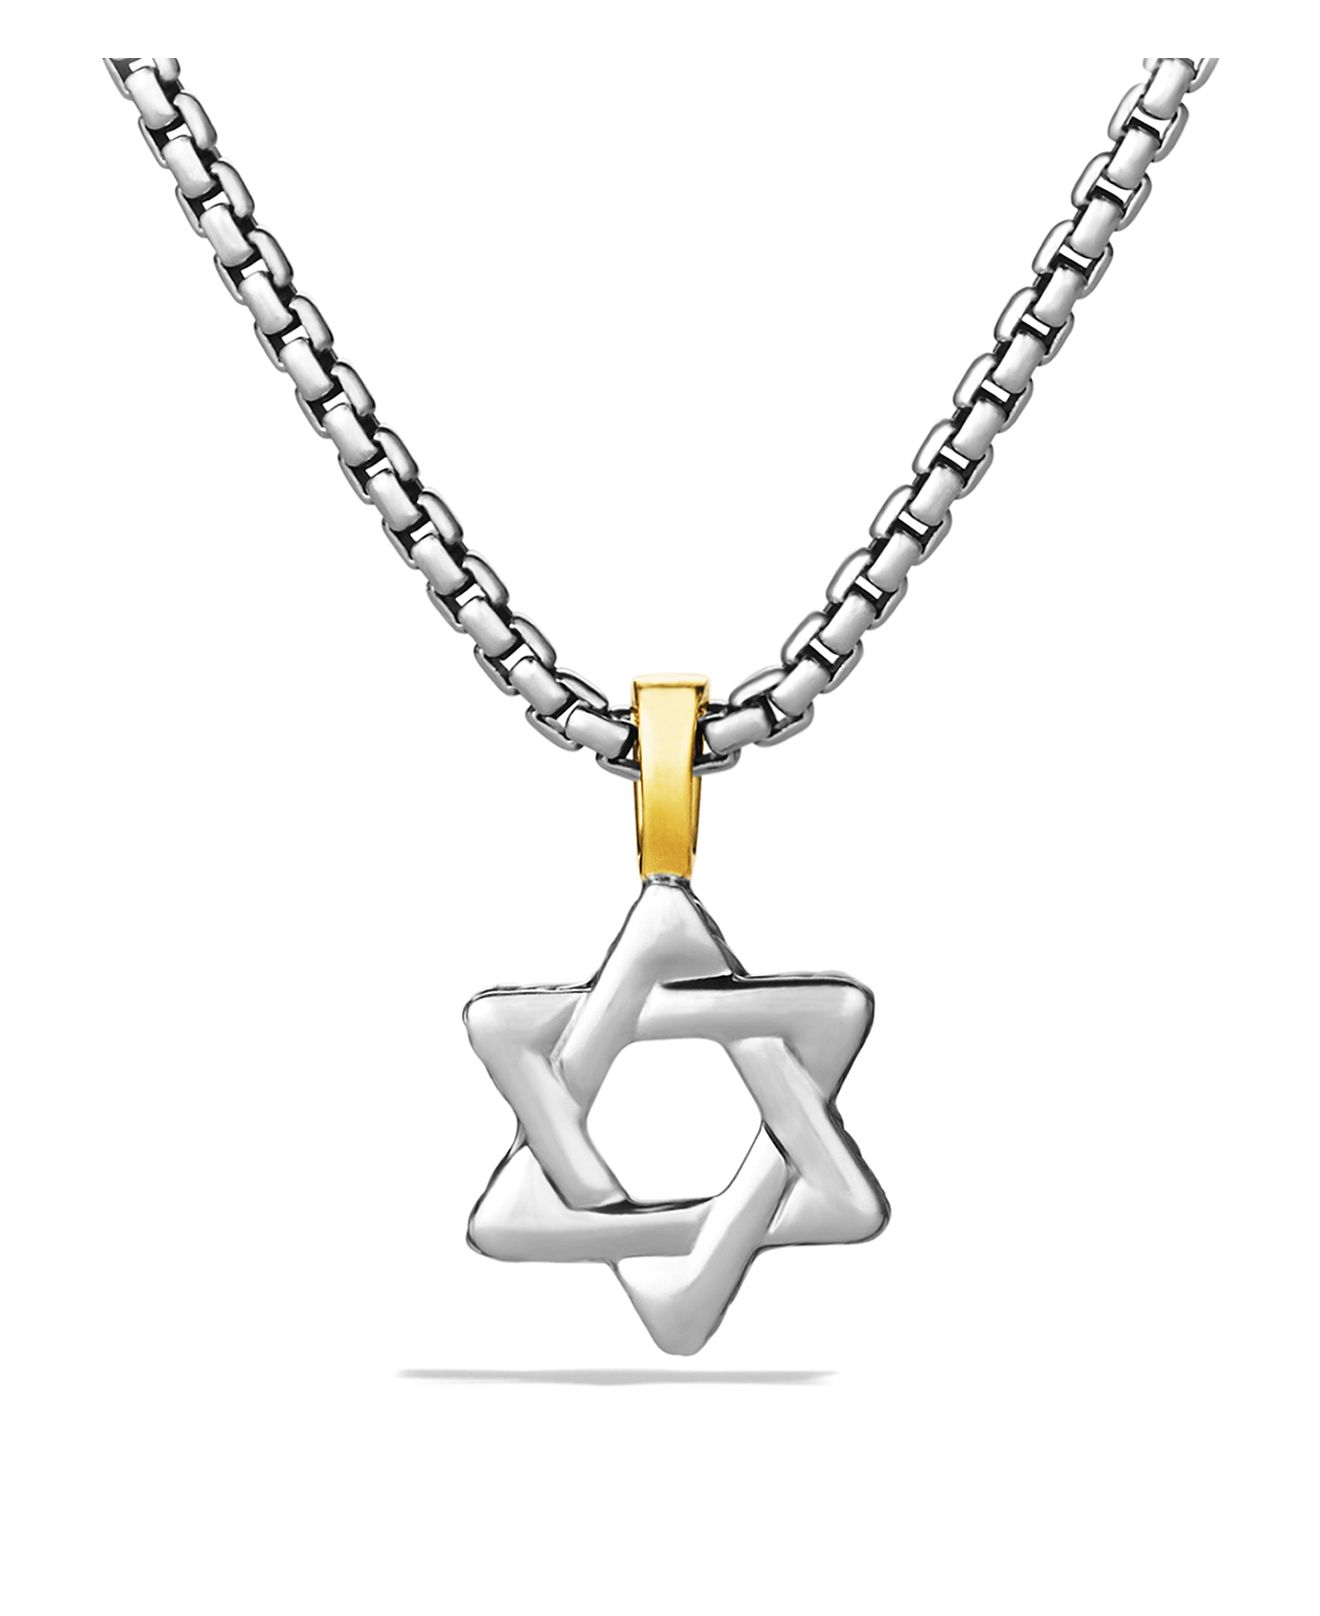 David Yurman Star of David Dog Tag Pendant Sterling Silver NWOT $ New (Other) $ Guaranteed by Mon, Nov. Buy It Now +$ shipping. 14 Watching. David Yurman Silver Pave Star of David with Black Diamonds Chevron Pendant 23mm. New (Other) $ From India. or .